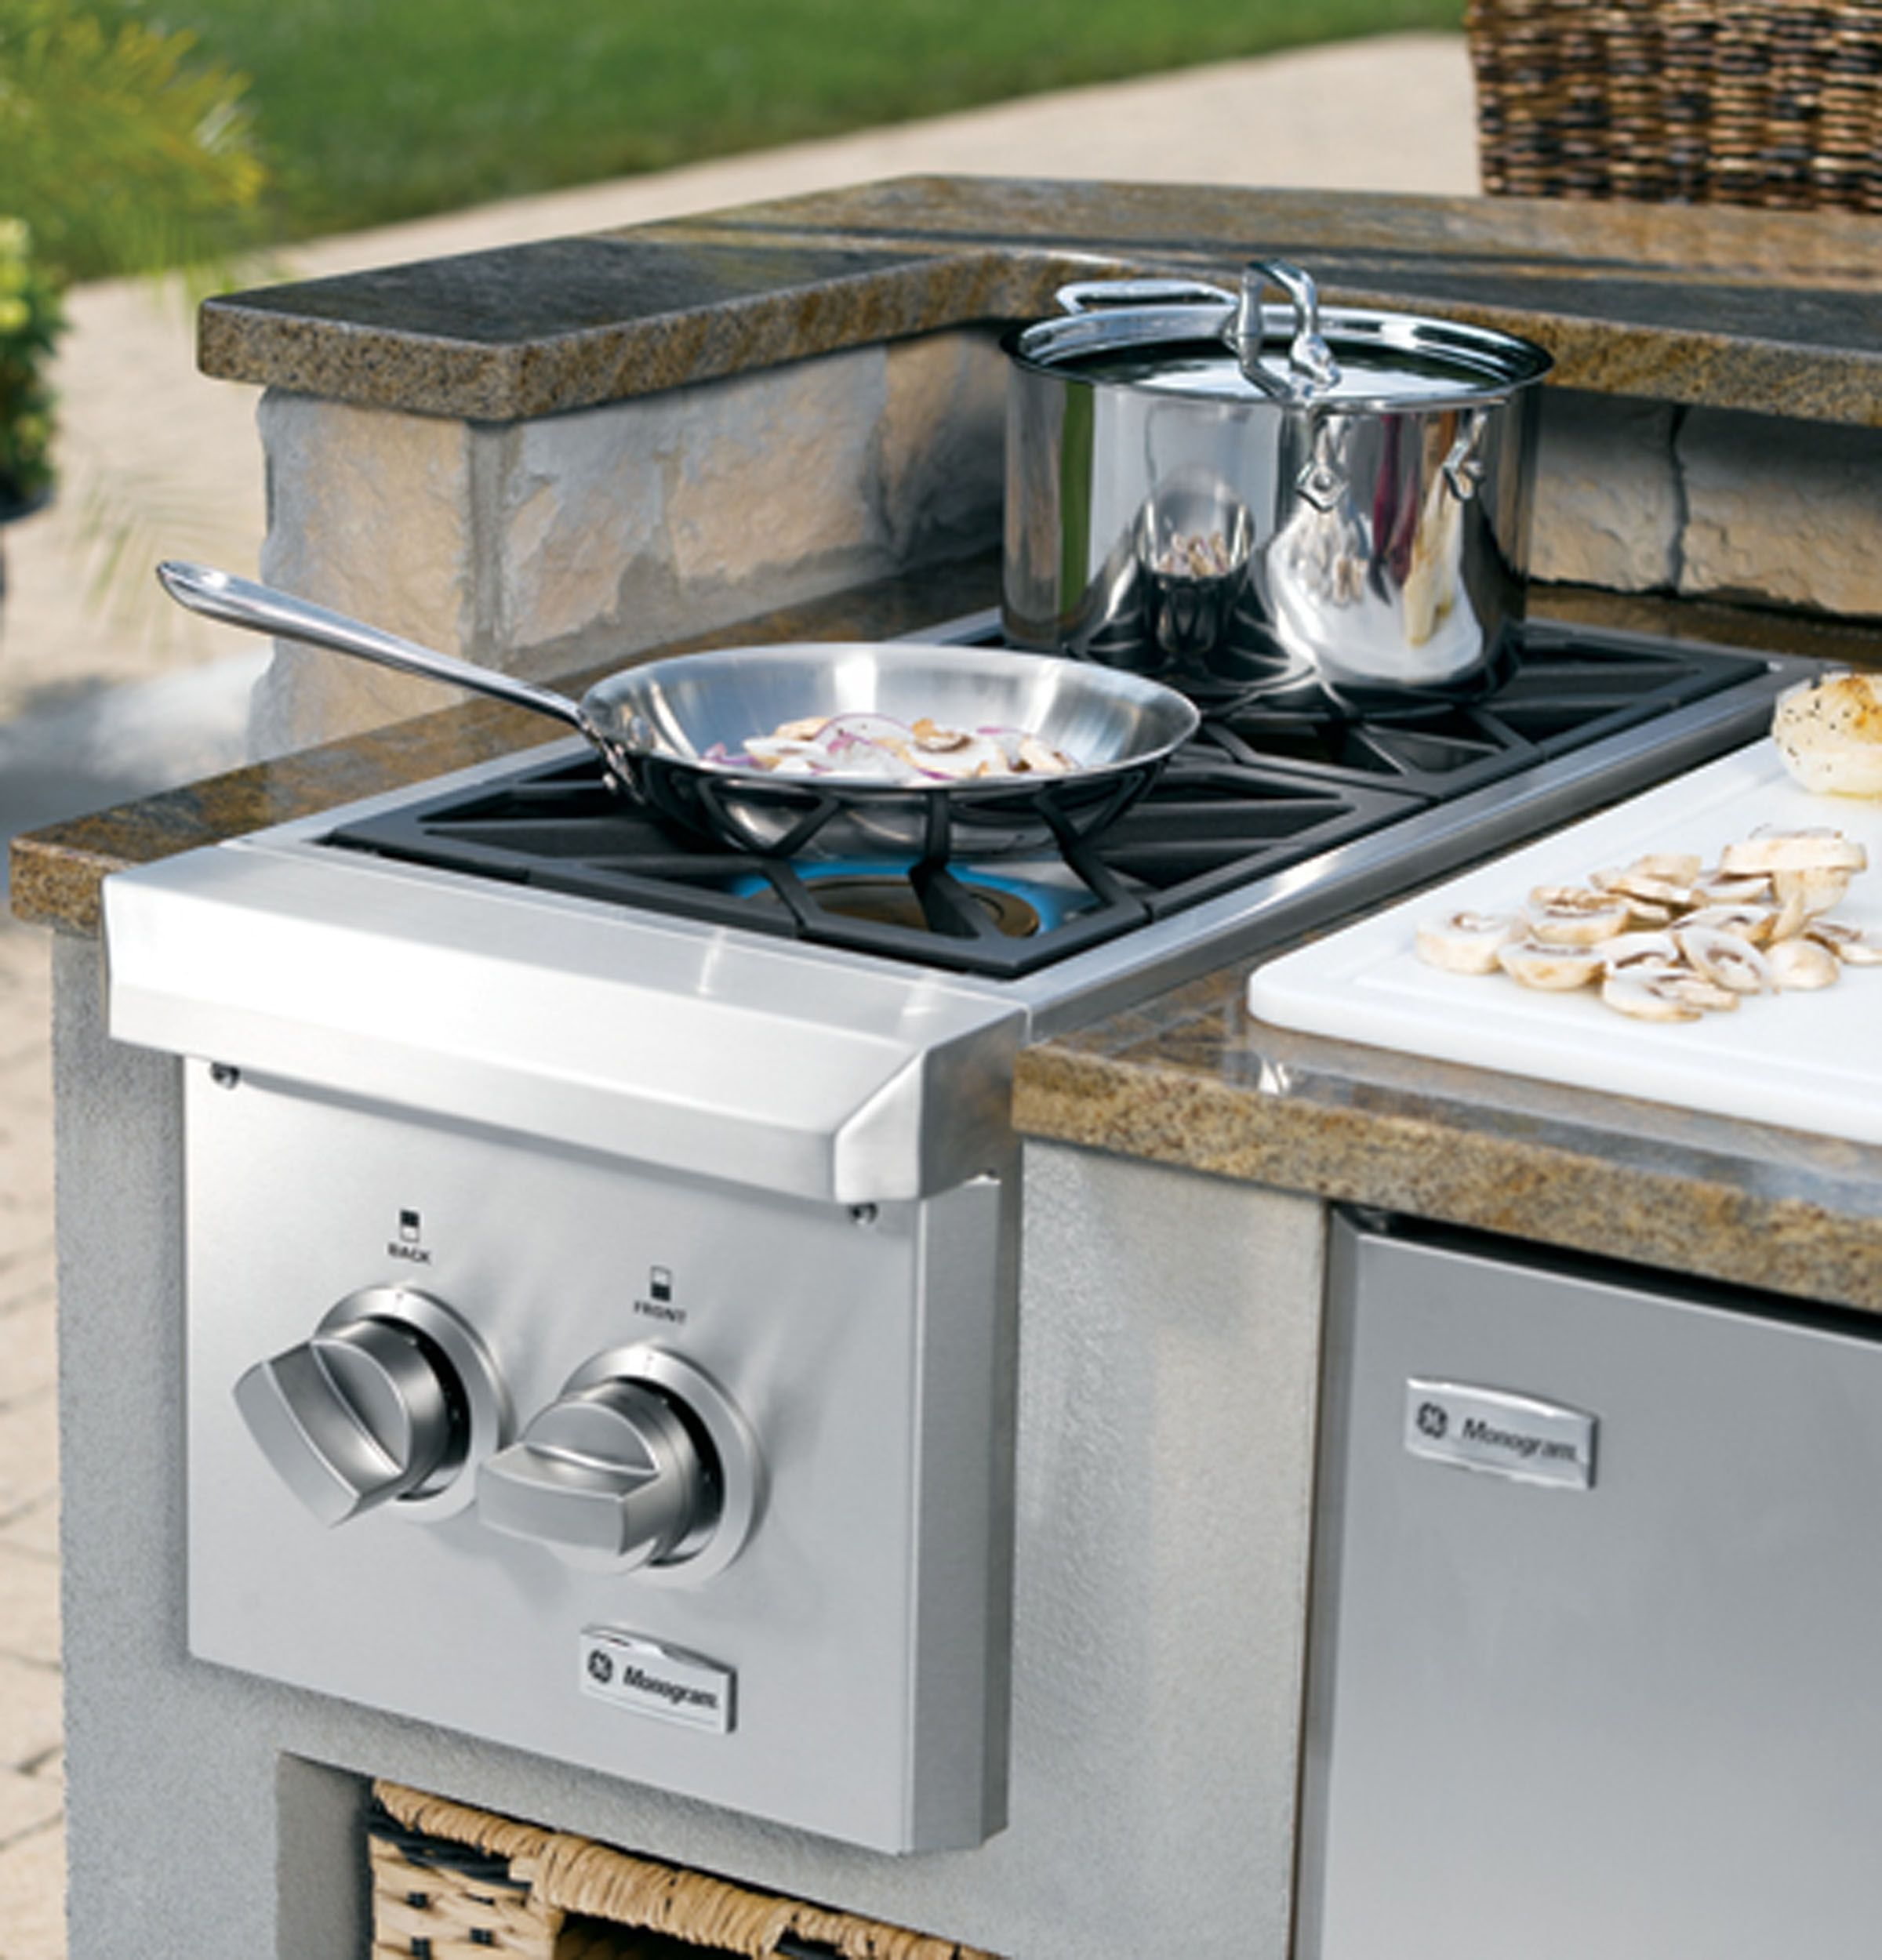 Outdoor Gas Stove Top Buethe Org Gas Stove Top Outdoor Stove Gas Stove